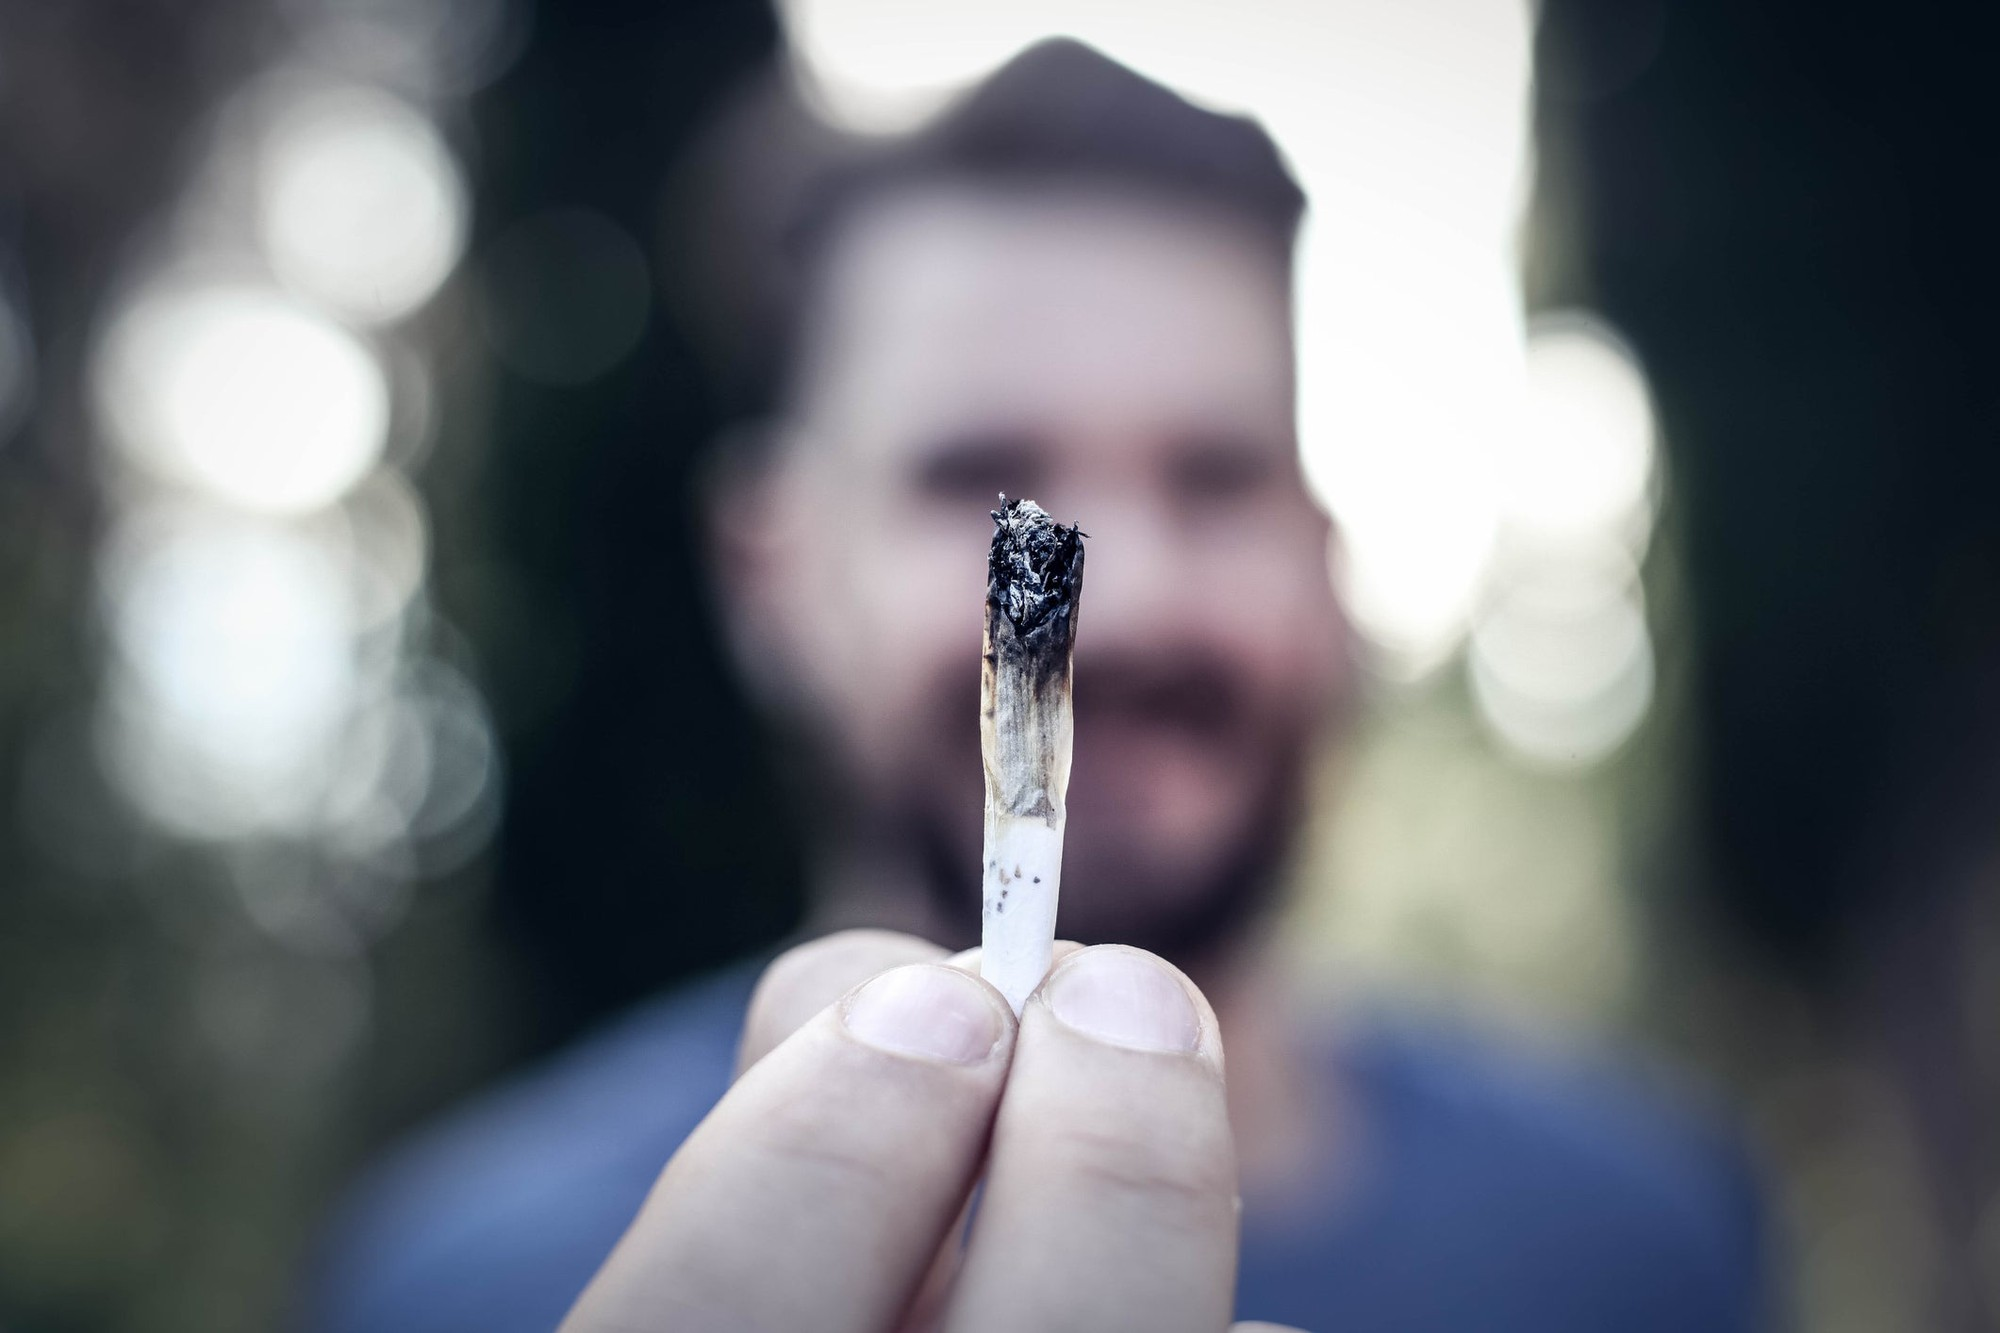 A person holding up a lit cannabis joint by his fingertips.